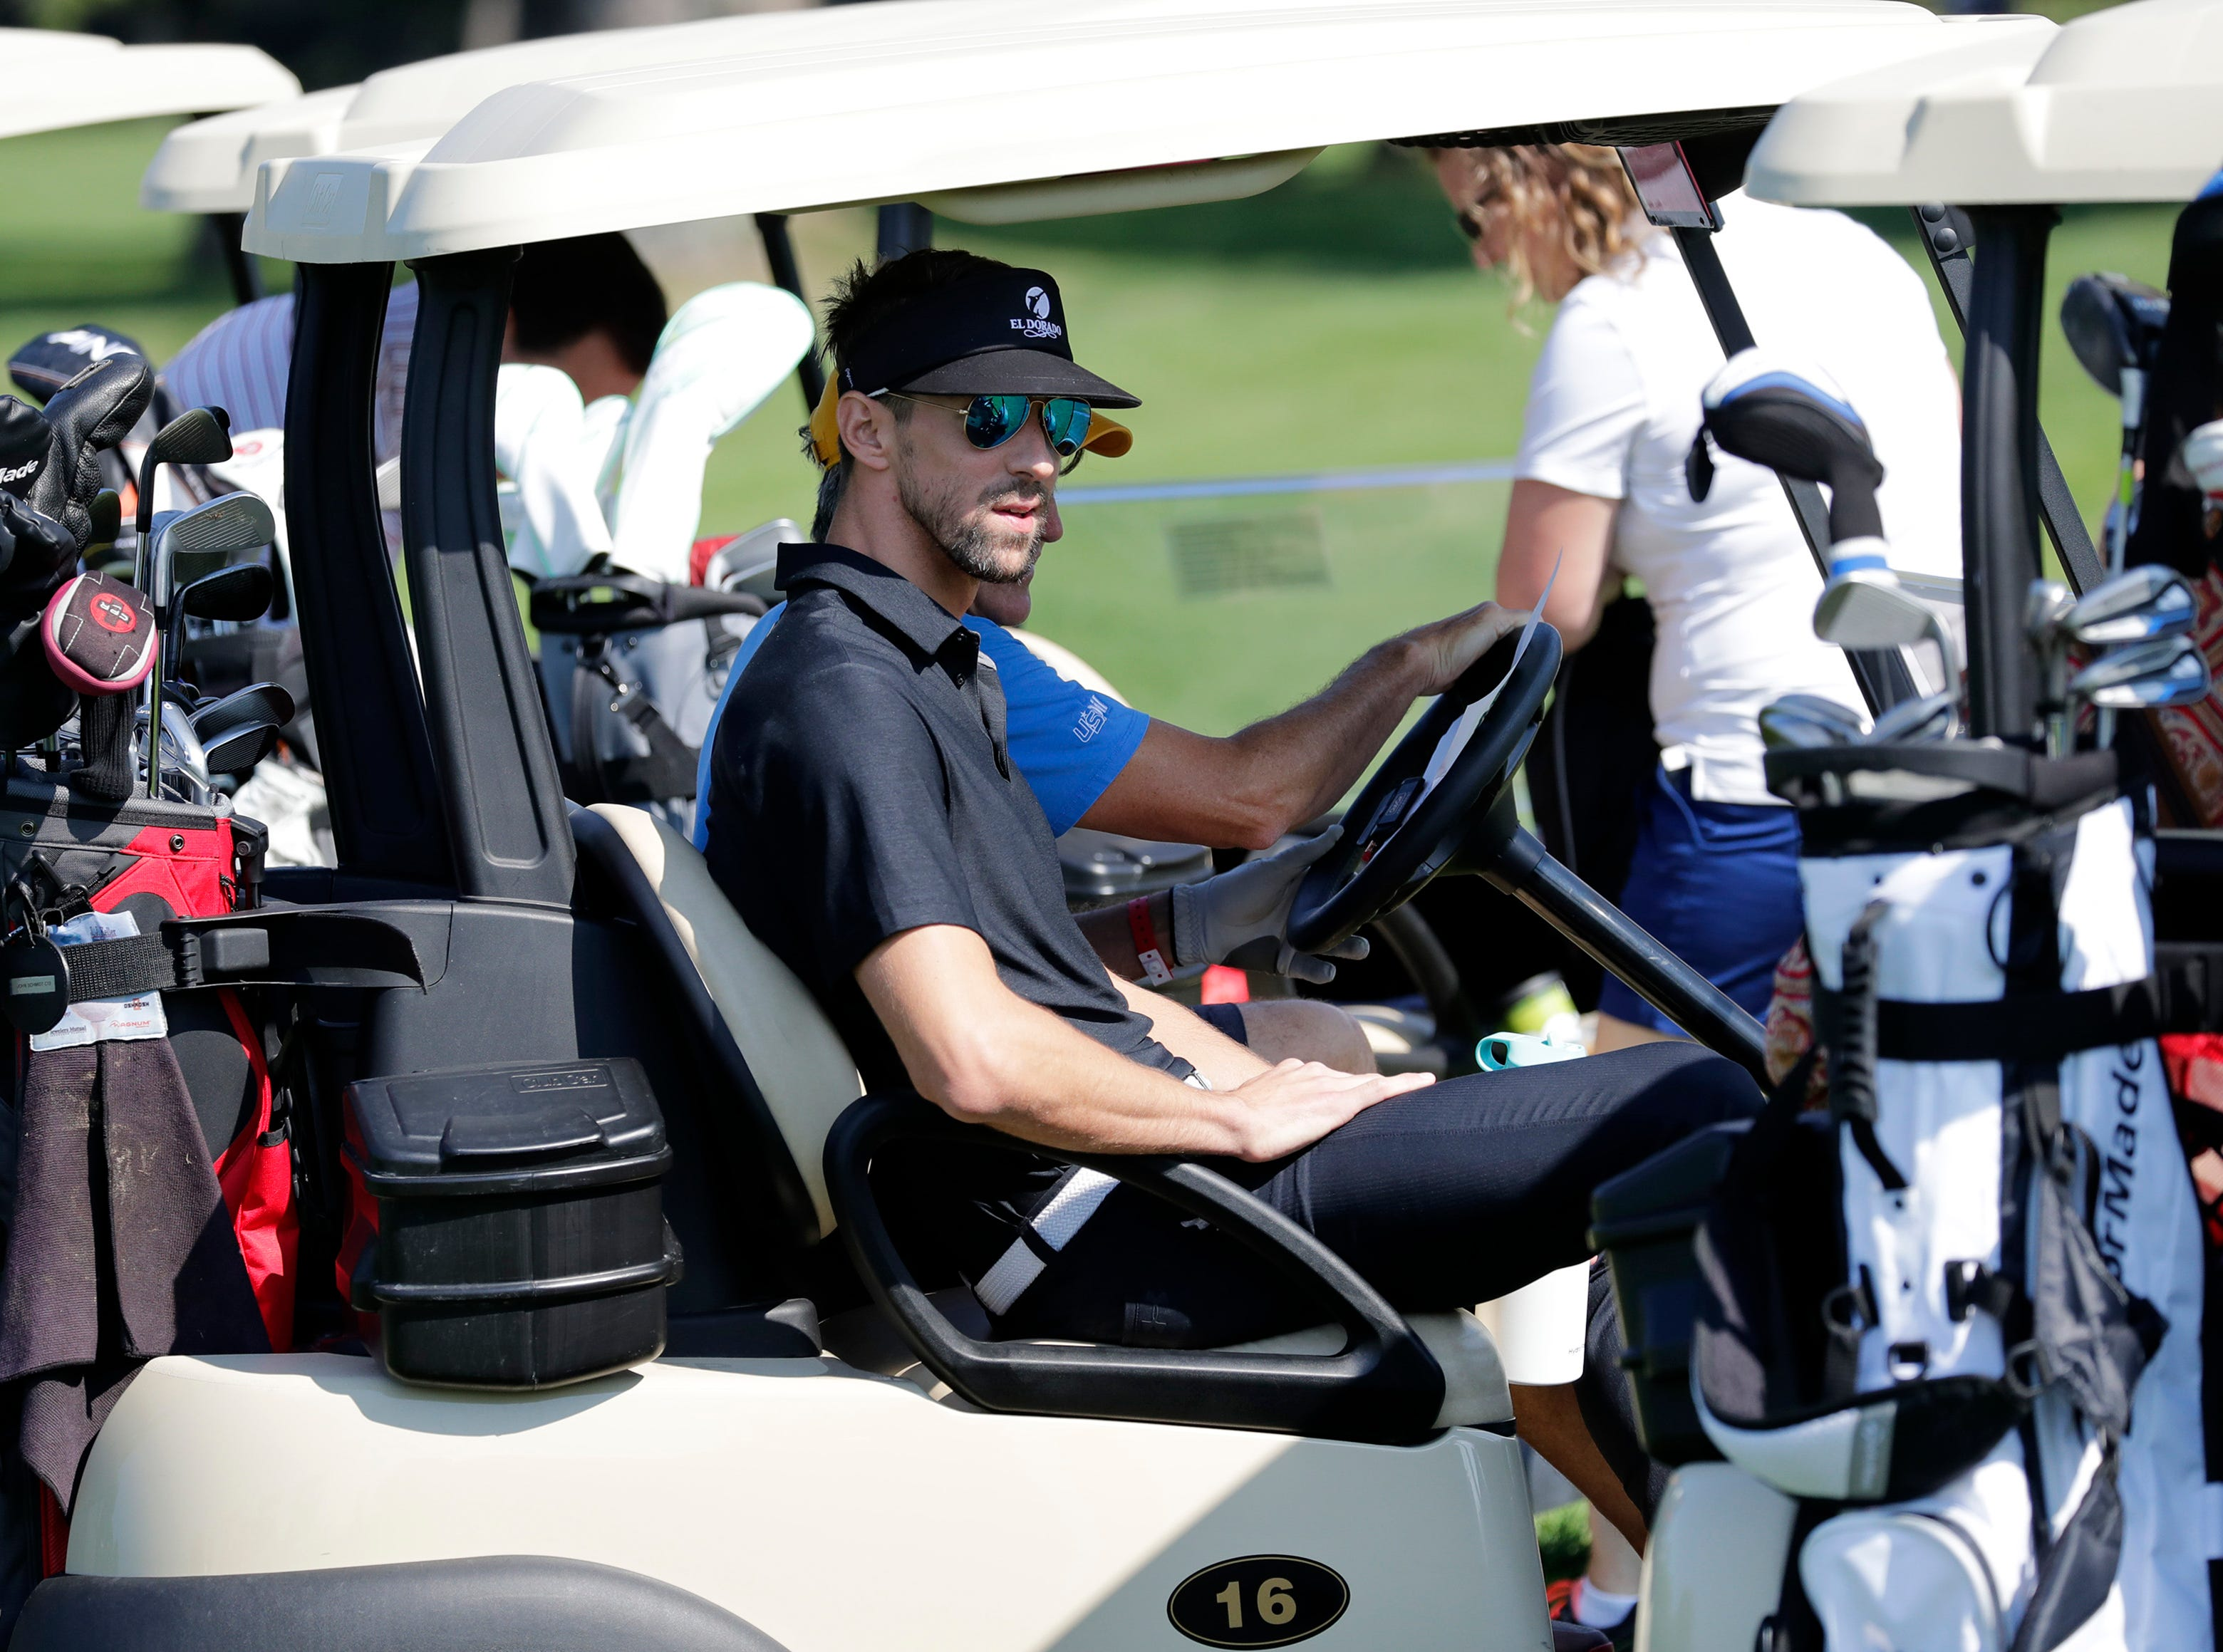 Michael Phelps gets ready to head out onto the course during the U.S. Venture Open Wednesday, Aug. 8, 2018, at North Shore Golf Club in Menasha, Wis.